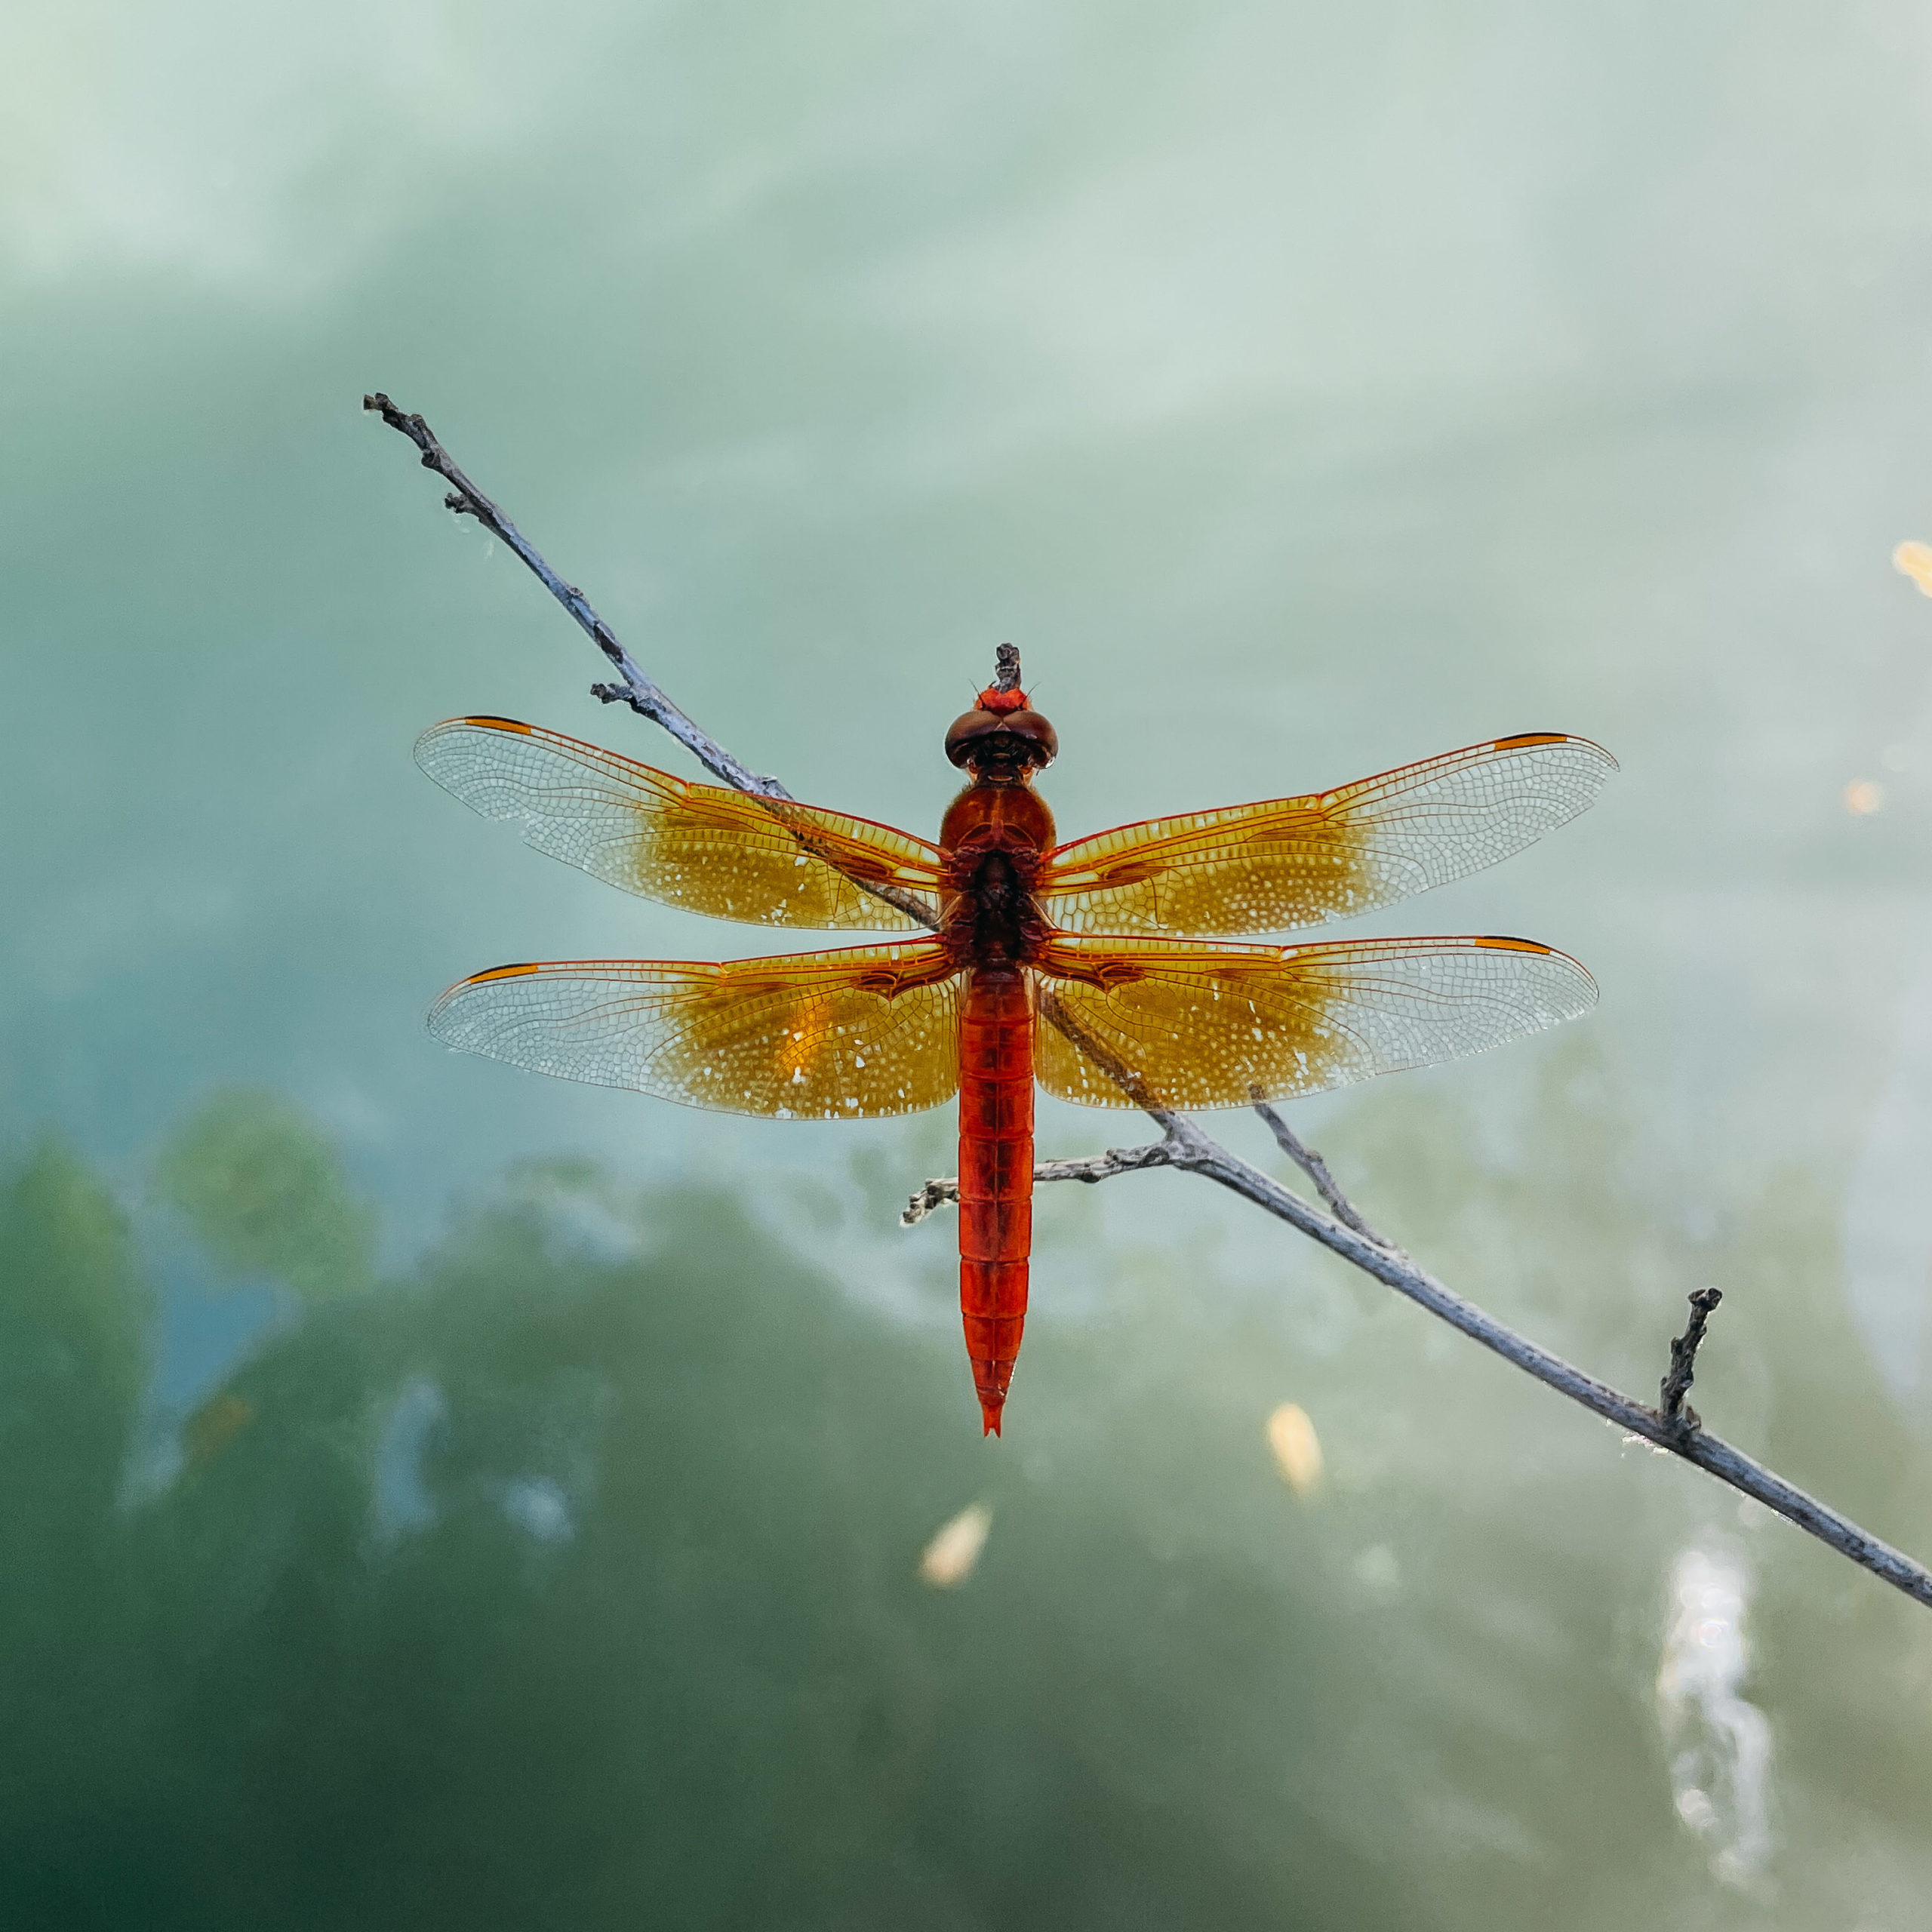 A red orange dragonfly